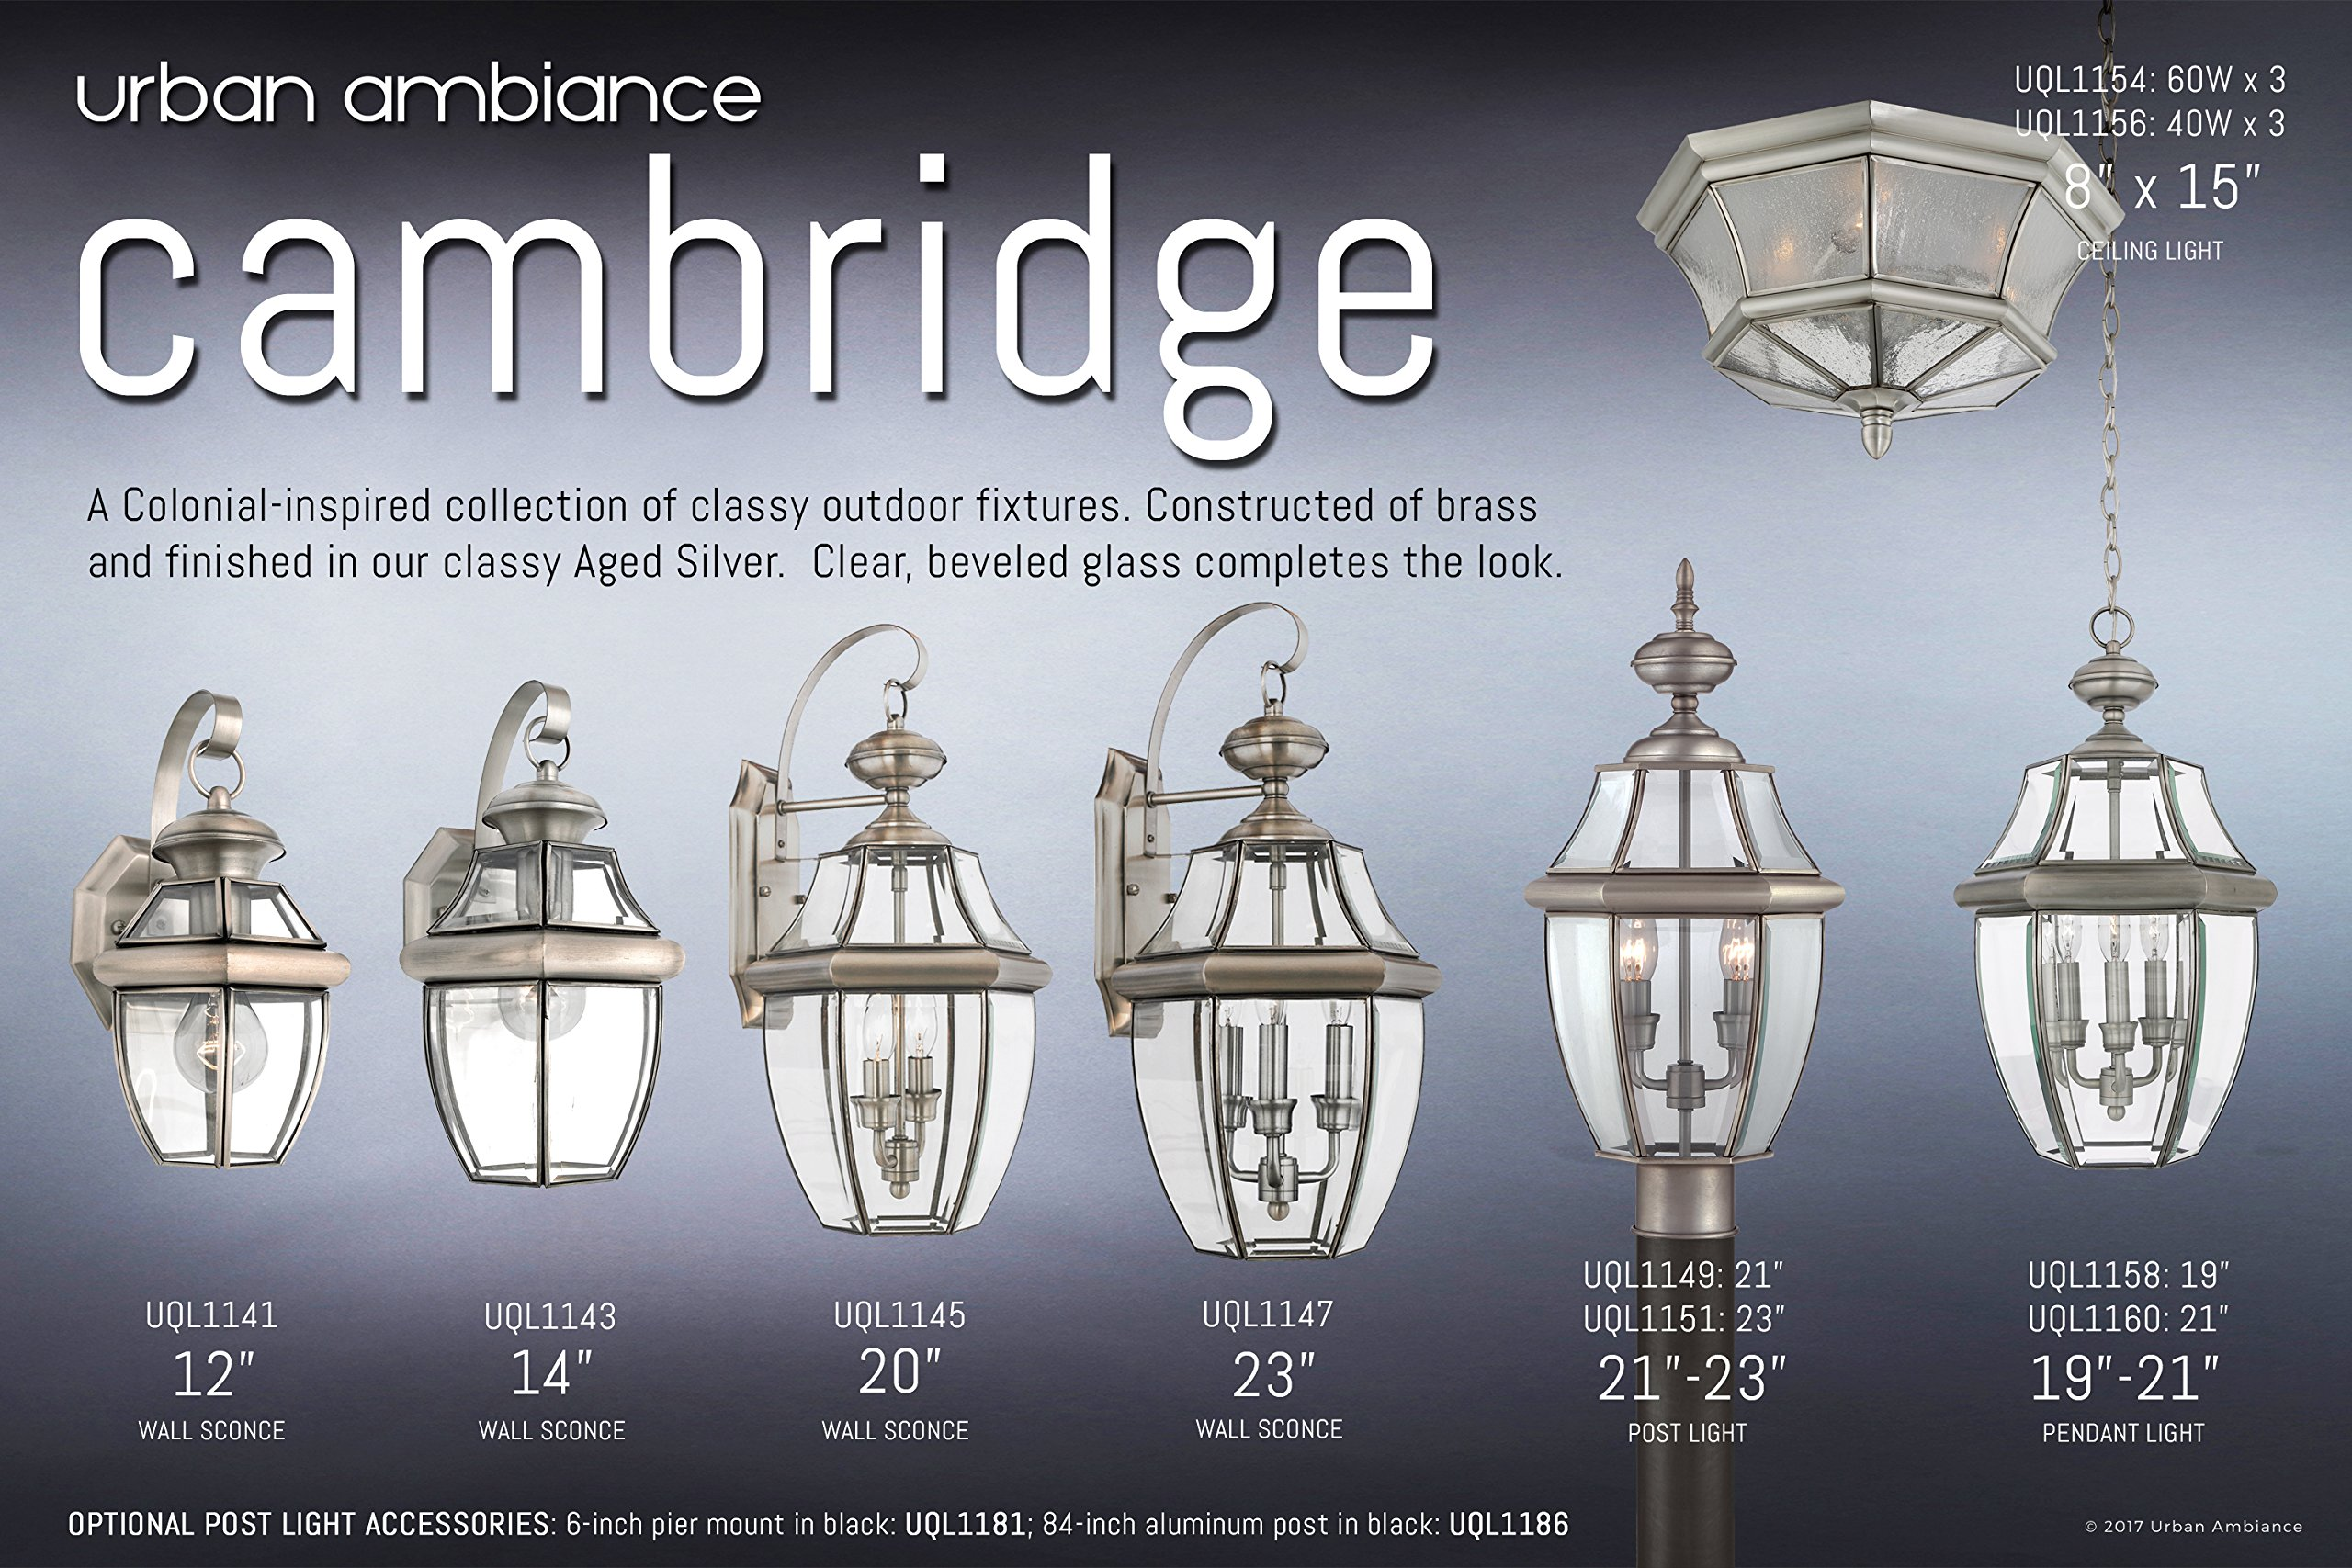 Luxury Colonial Outdoor Wall Light, Large Size: 20''H x 10.5''W, with Tudor Style Elements, Versatile Design, Classy Aged Silver Finish and Beveled Glass, UQL1145 by Urban Ambiance by Urban Ambiance (Image #1)